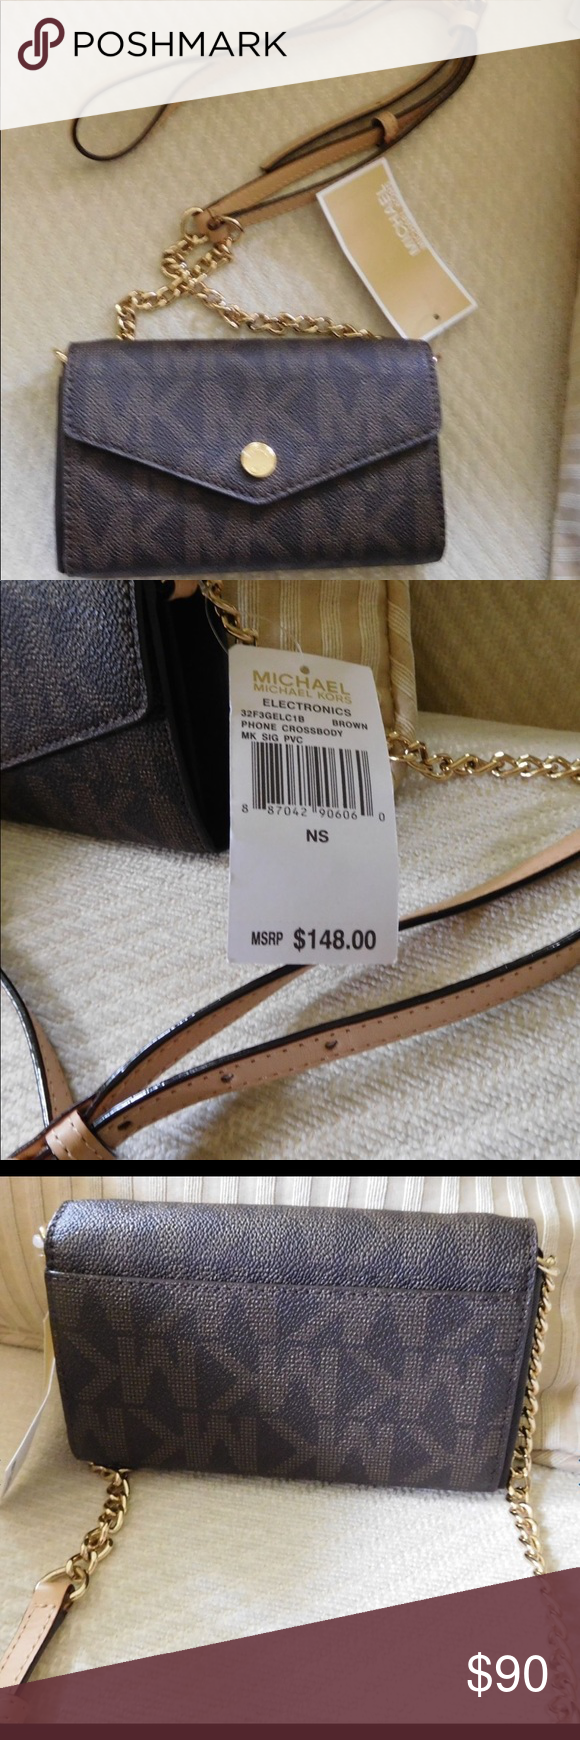 NWT Michael Kors small crossbody purse Authentic and NWT